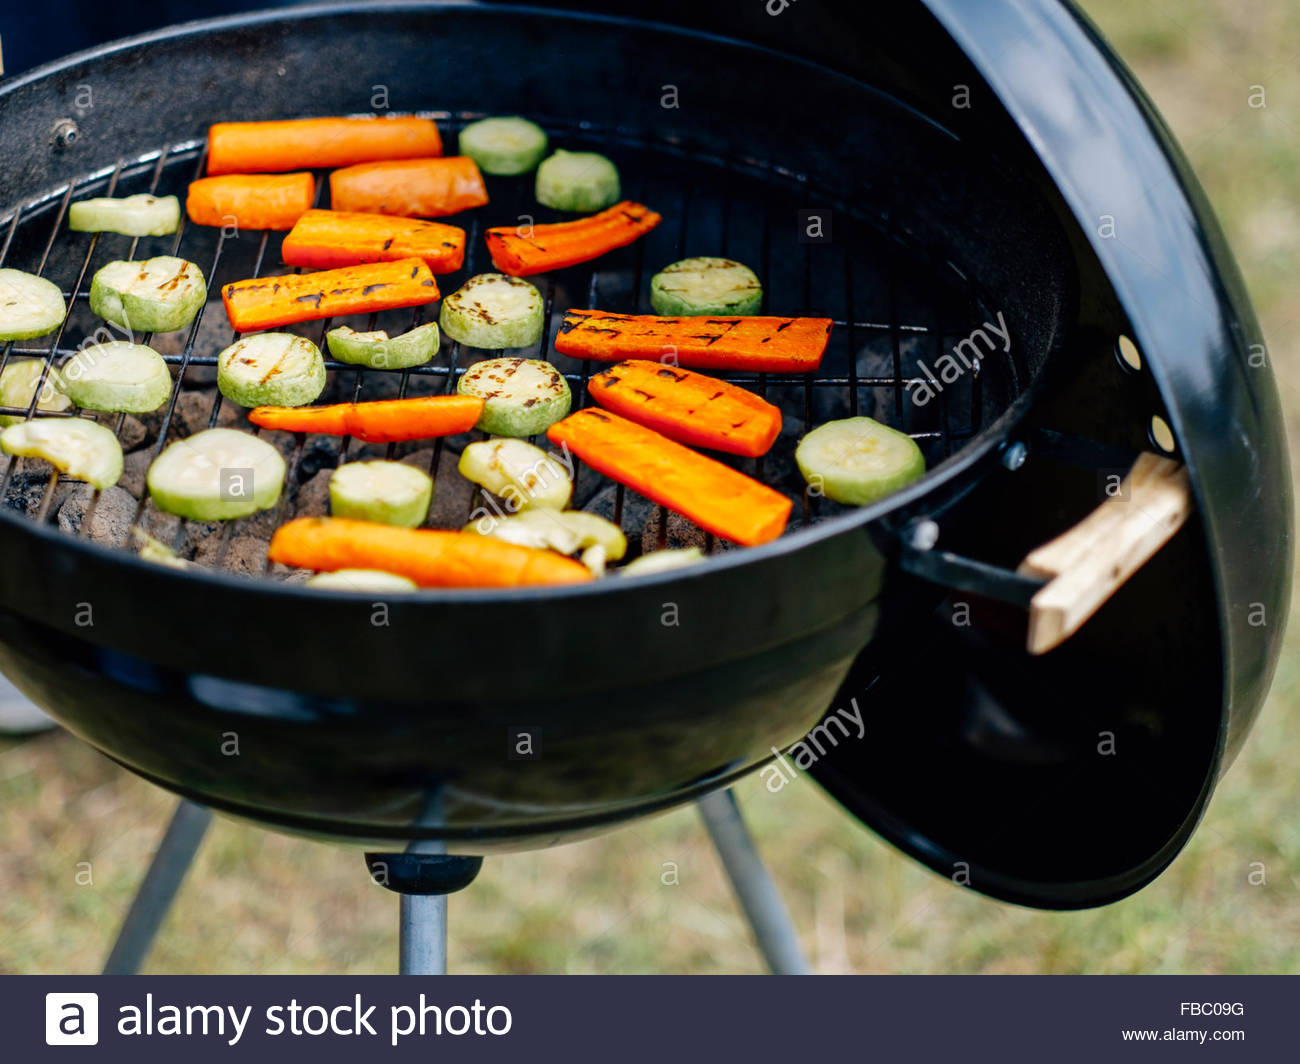 Open grill full of carrots and zucchini - Stock Image